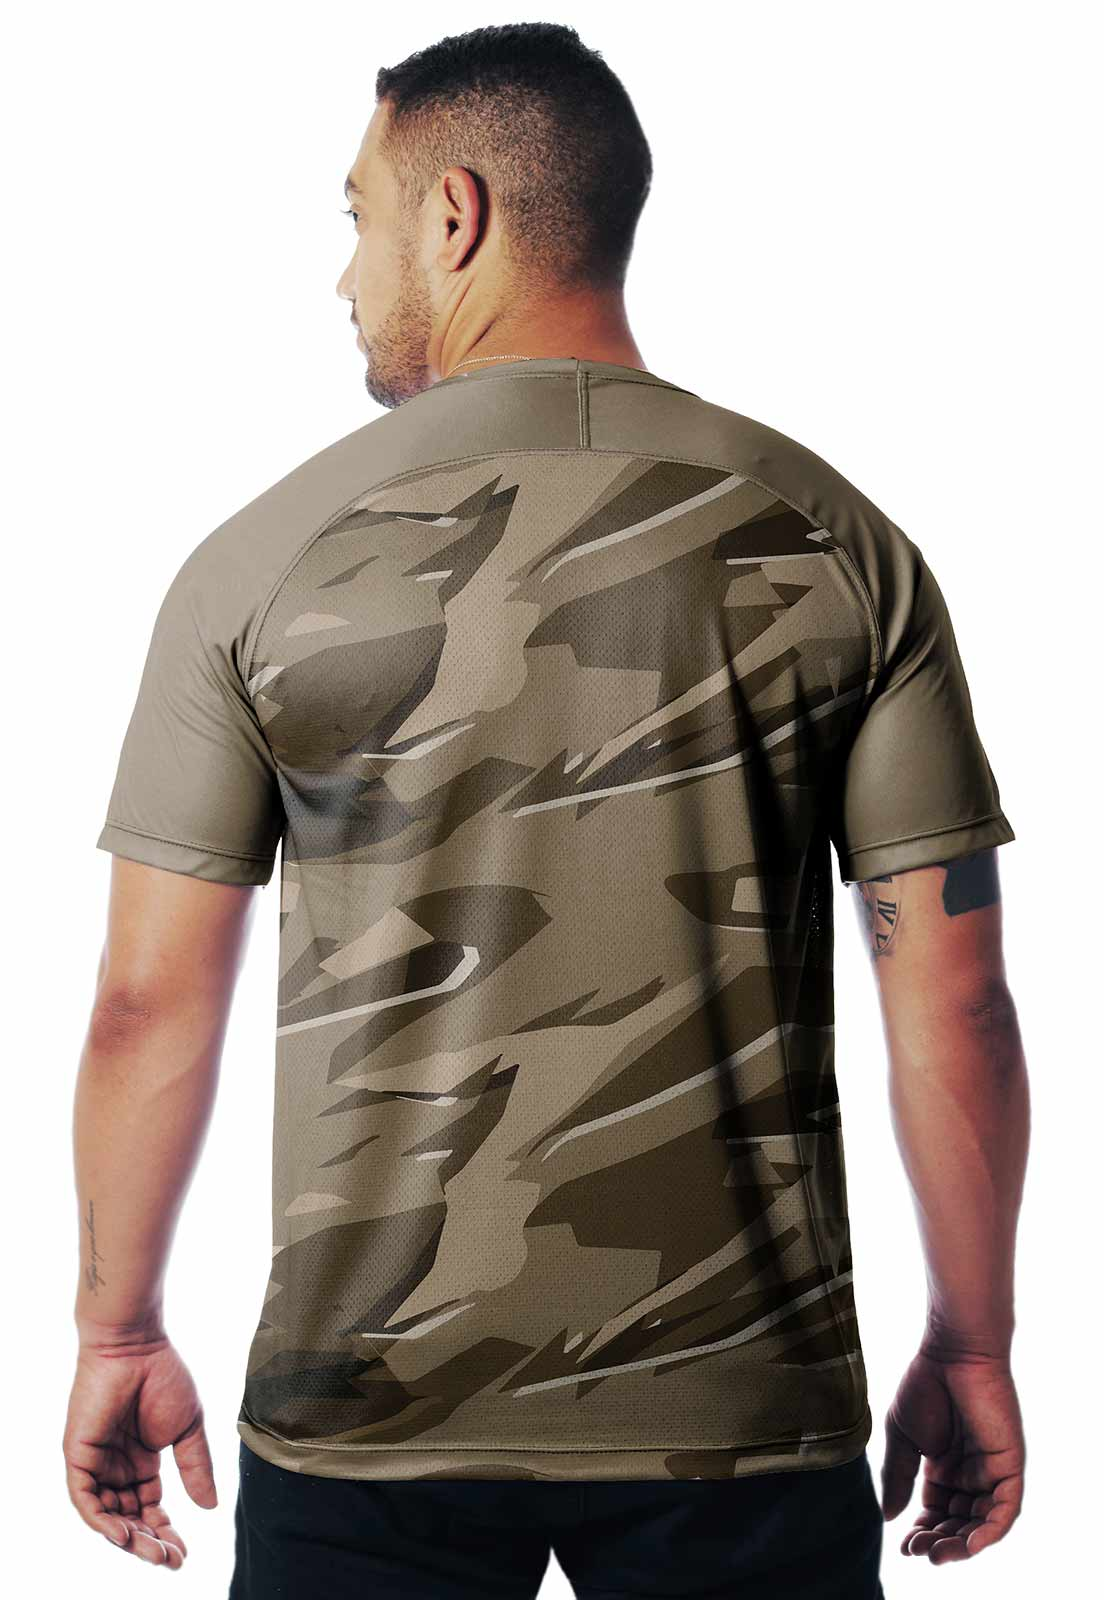 CAMISETA CAMUFLADA PARABELLUM DIA 01 MANGA CURTA MASCULINA - REAL HUNTER OUTDOORS